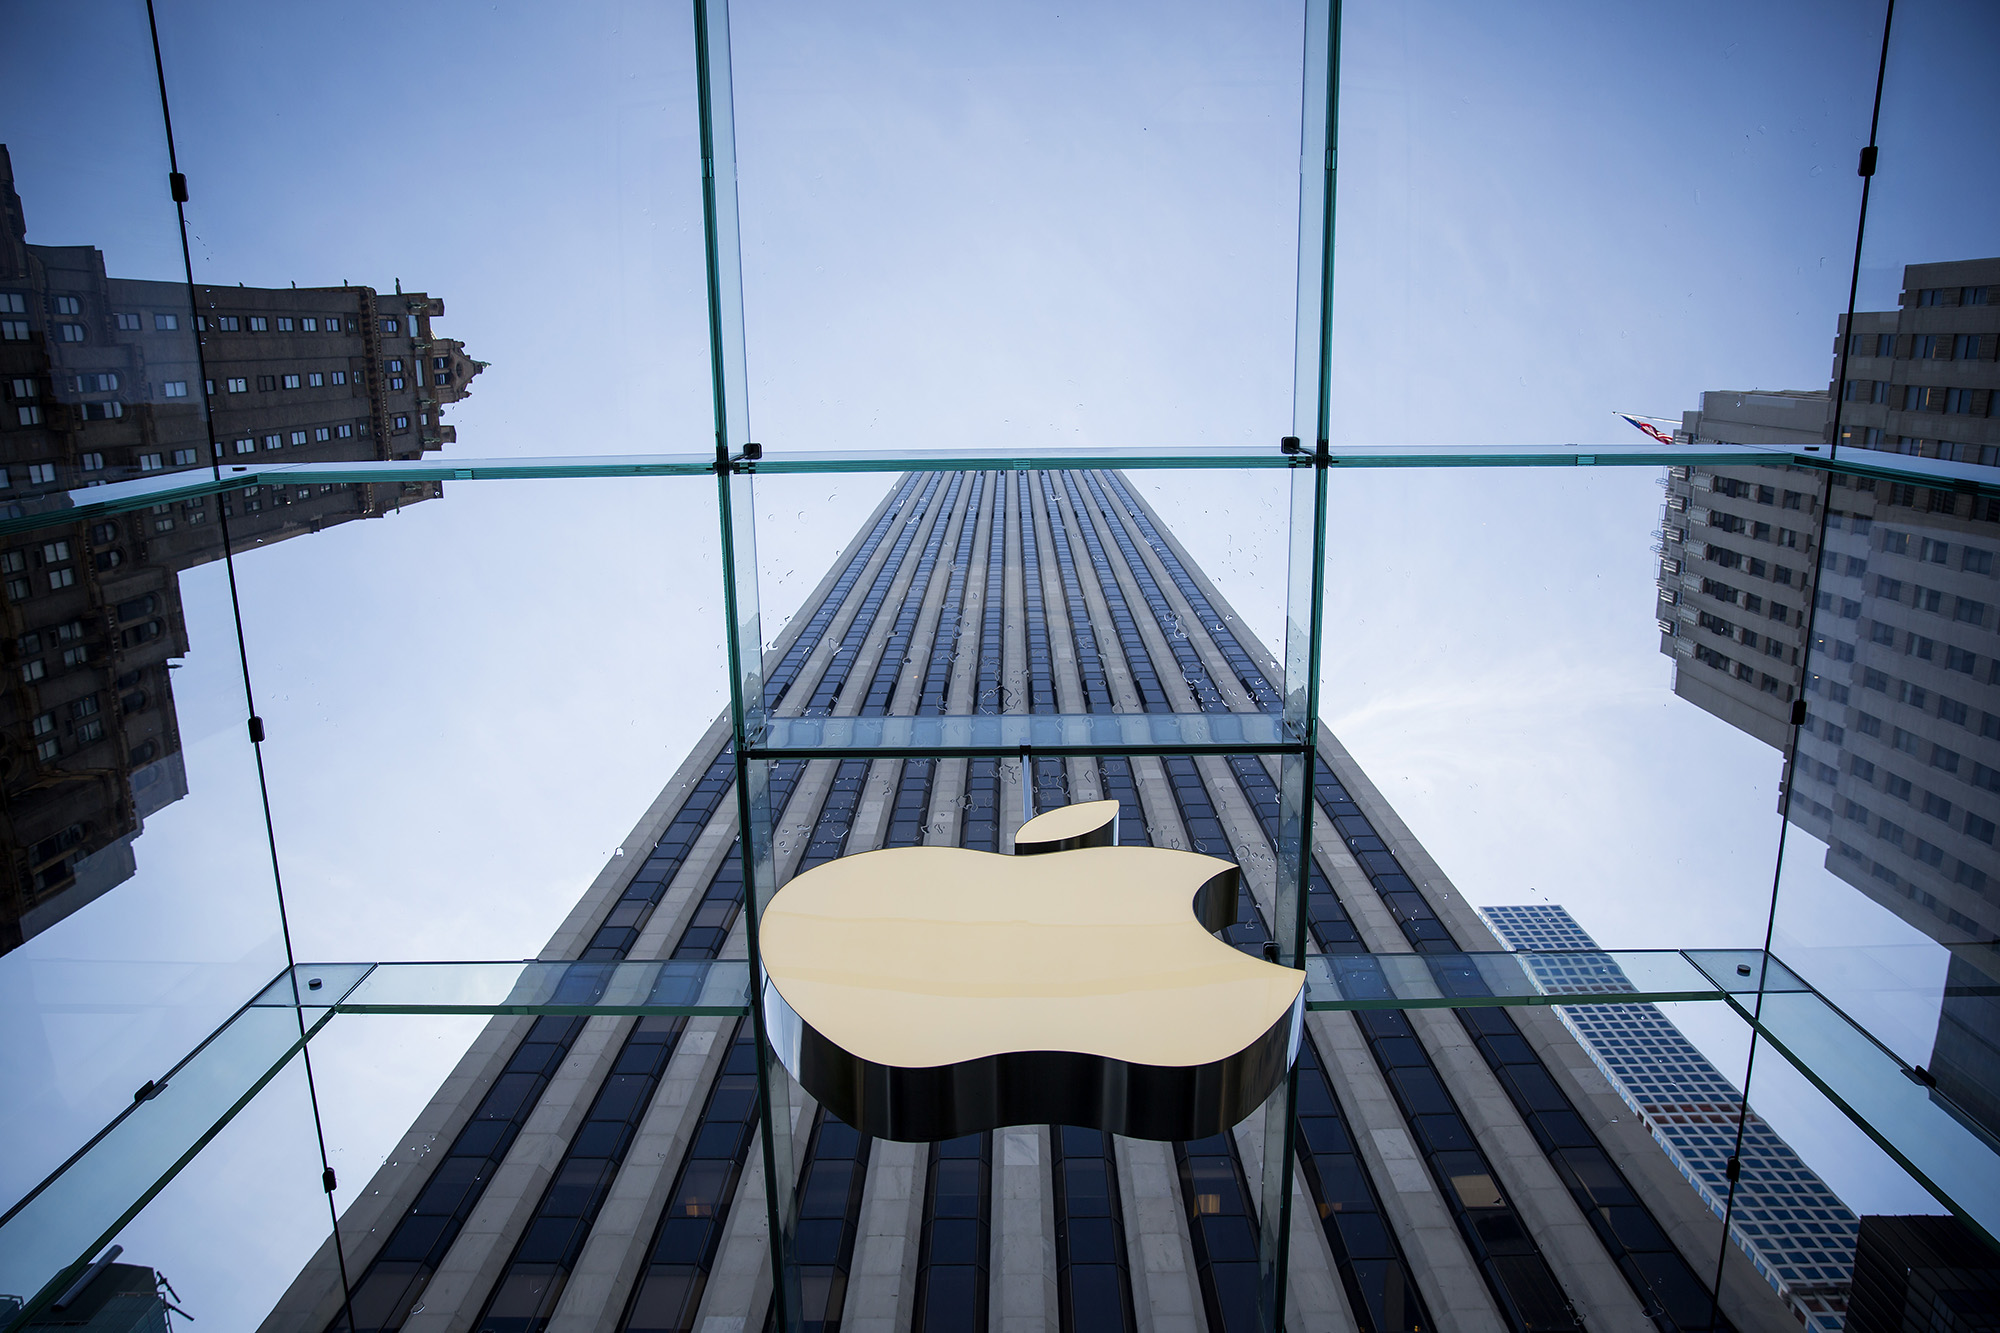 How To Buy Stock Direct By Lloyd Alexander Apple Inc Stock: Aapl Earnings  Beats, But Nothing Else To Celebrate Investing Us News